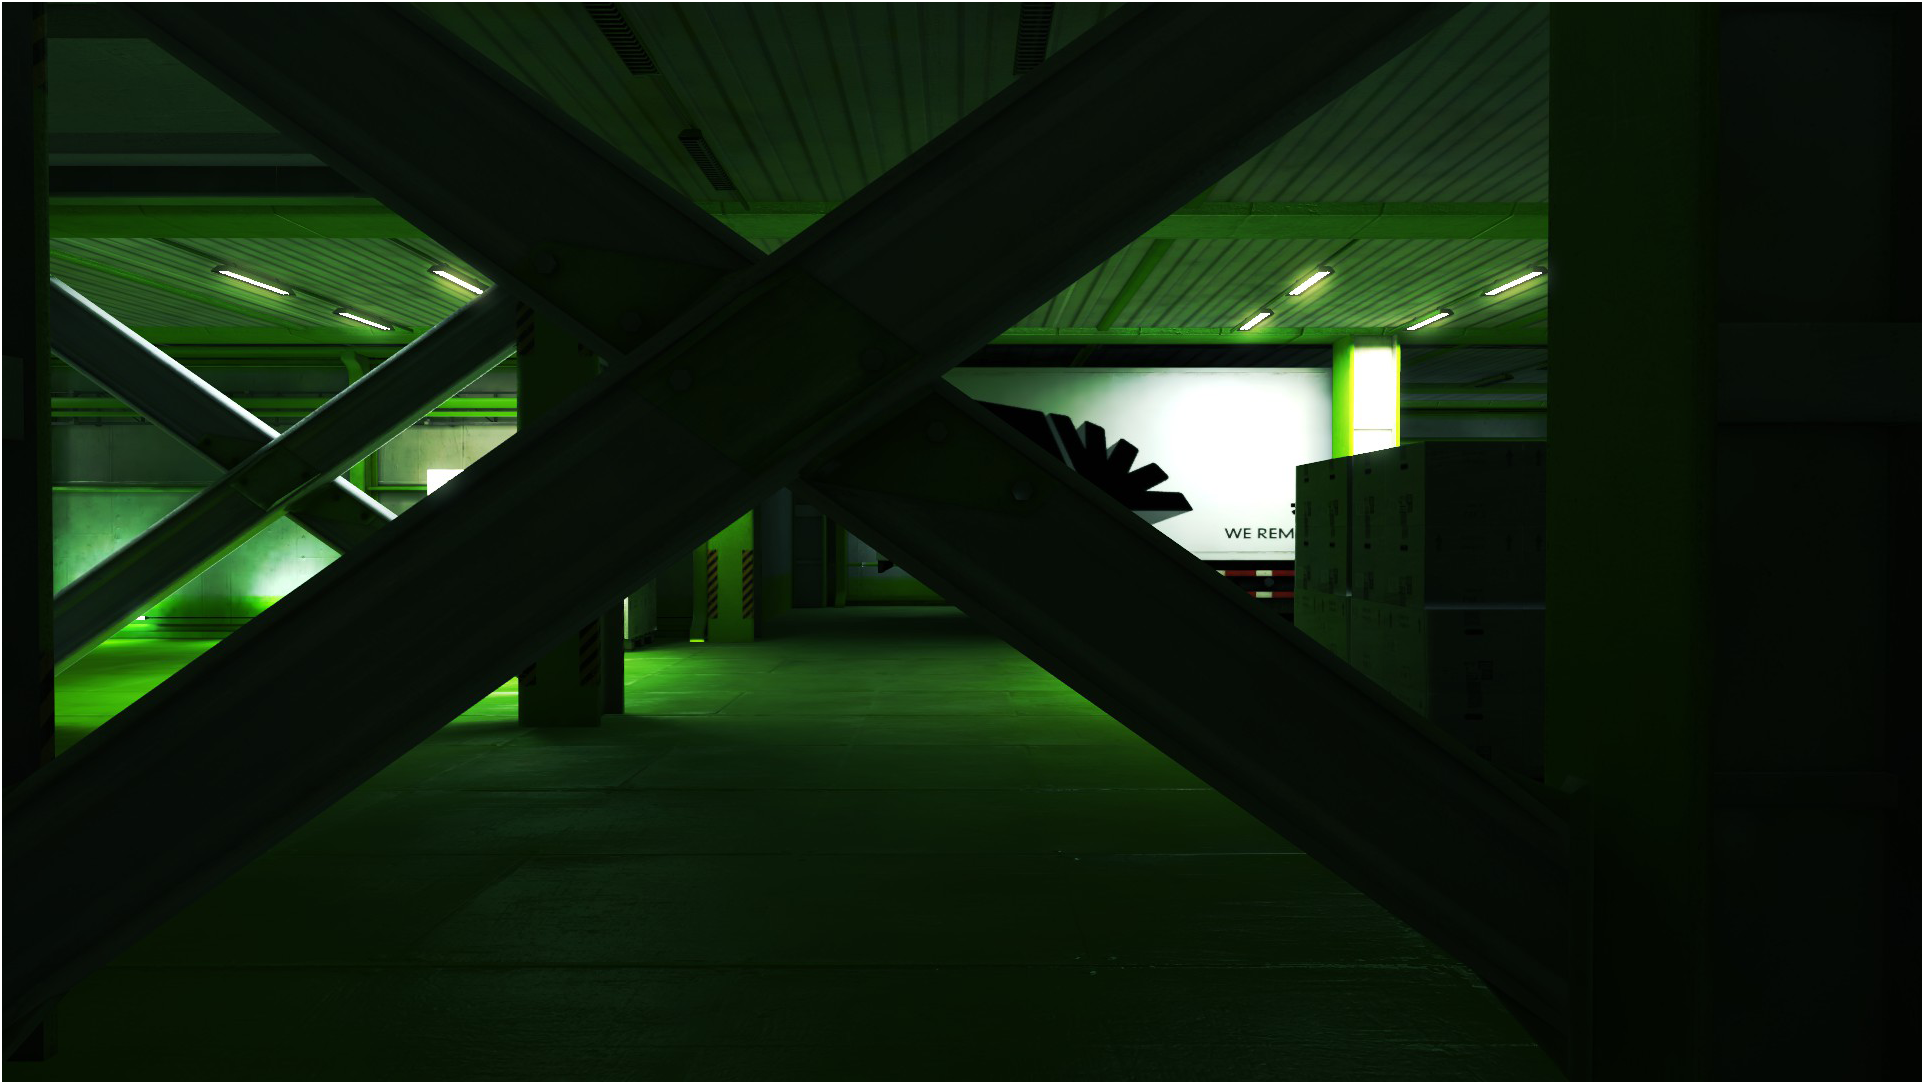 Mirror's Edge_0044_JTC.png